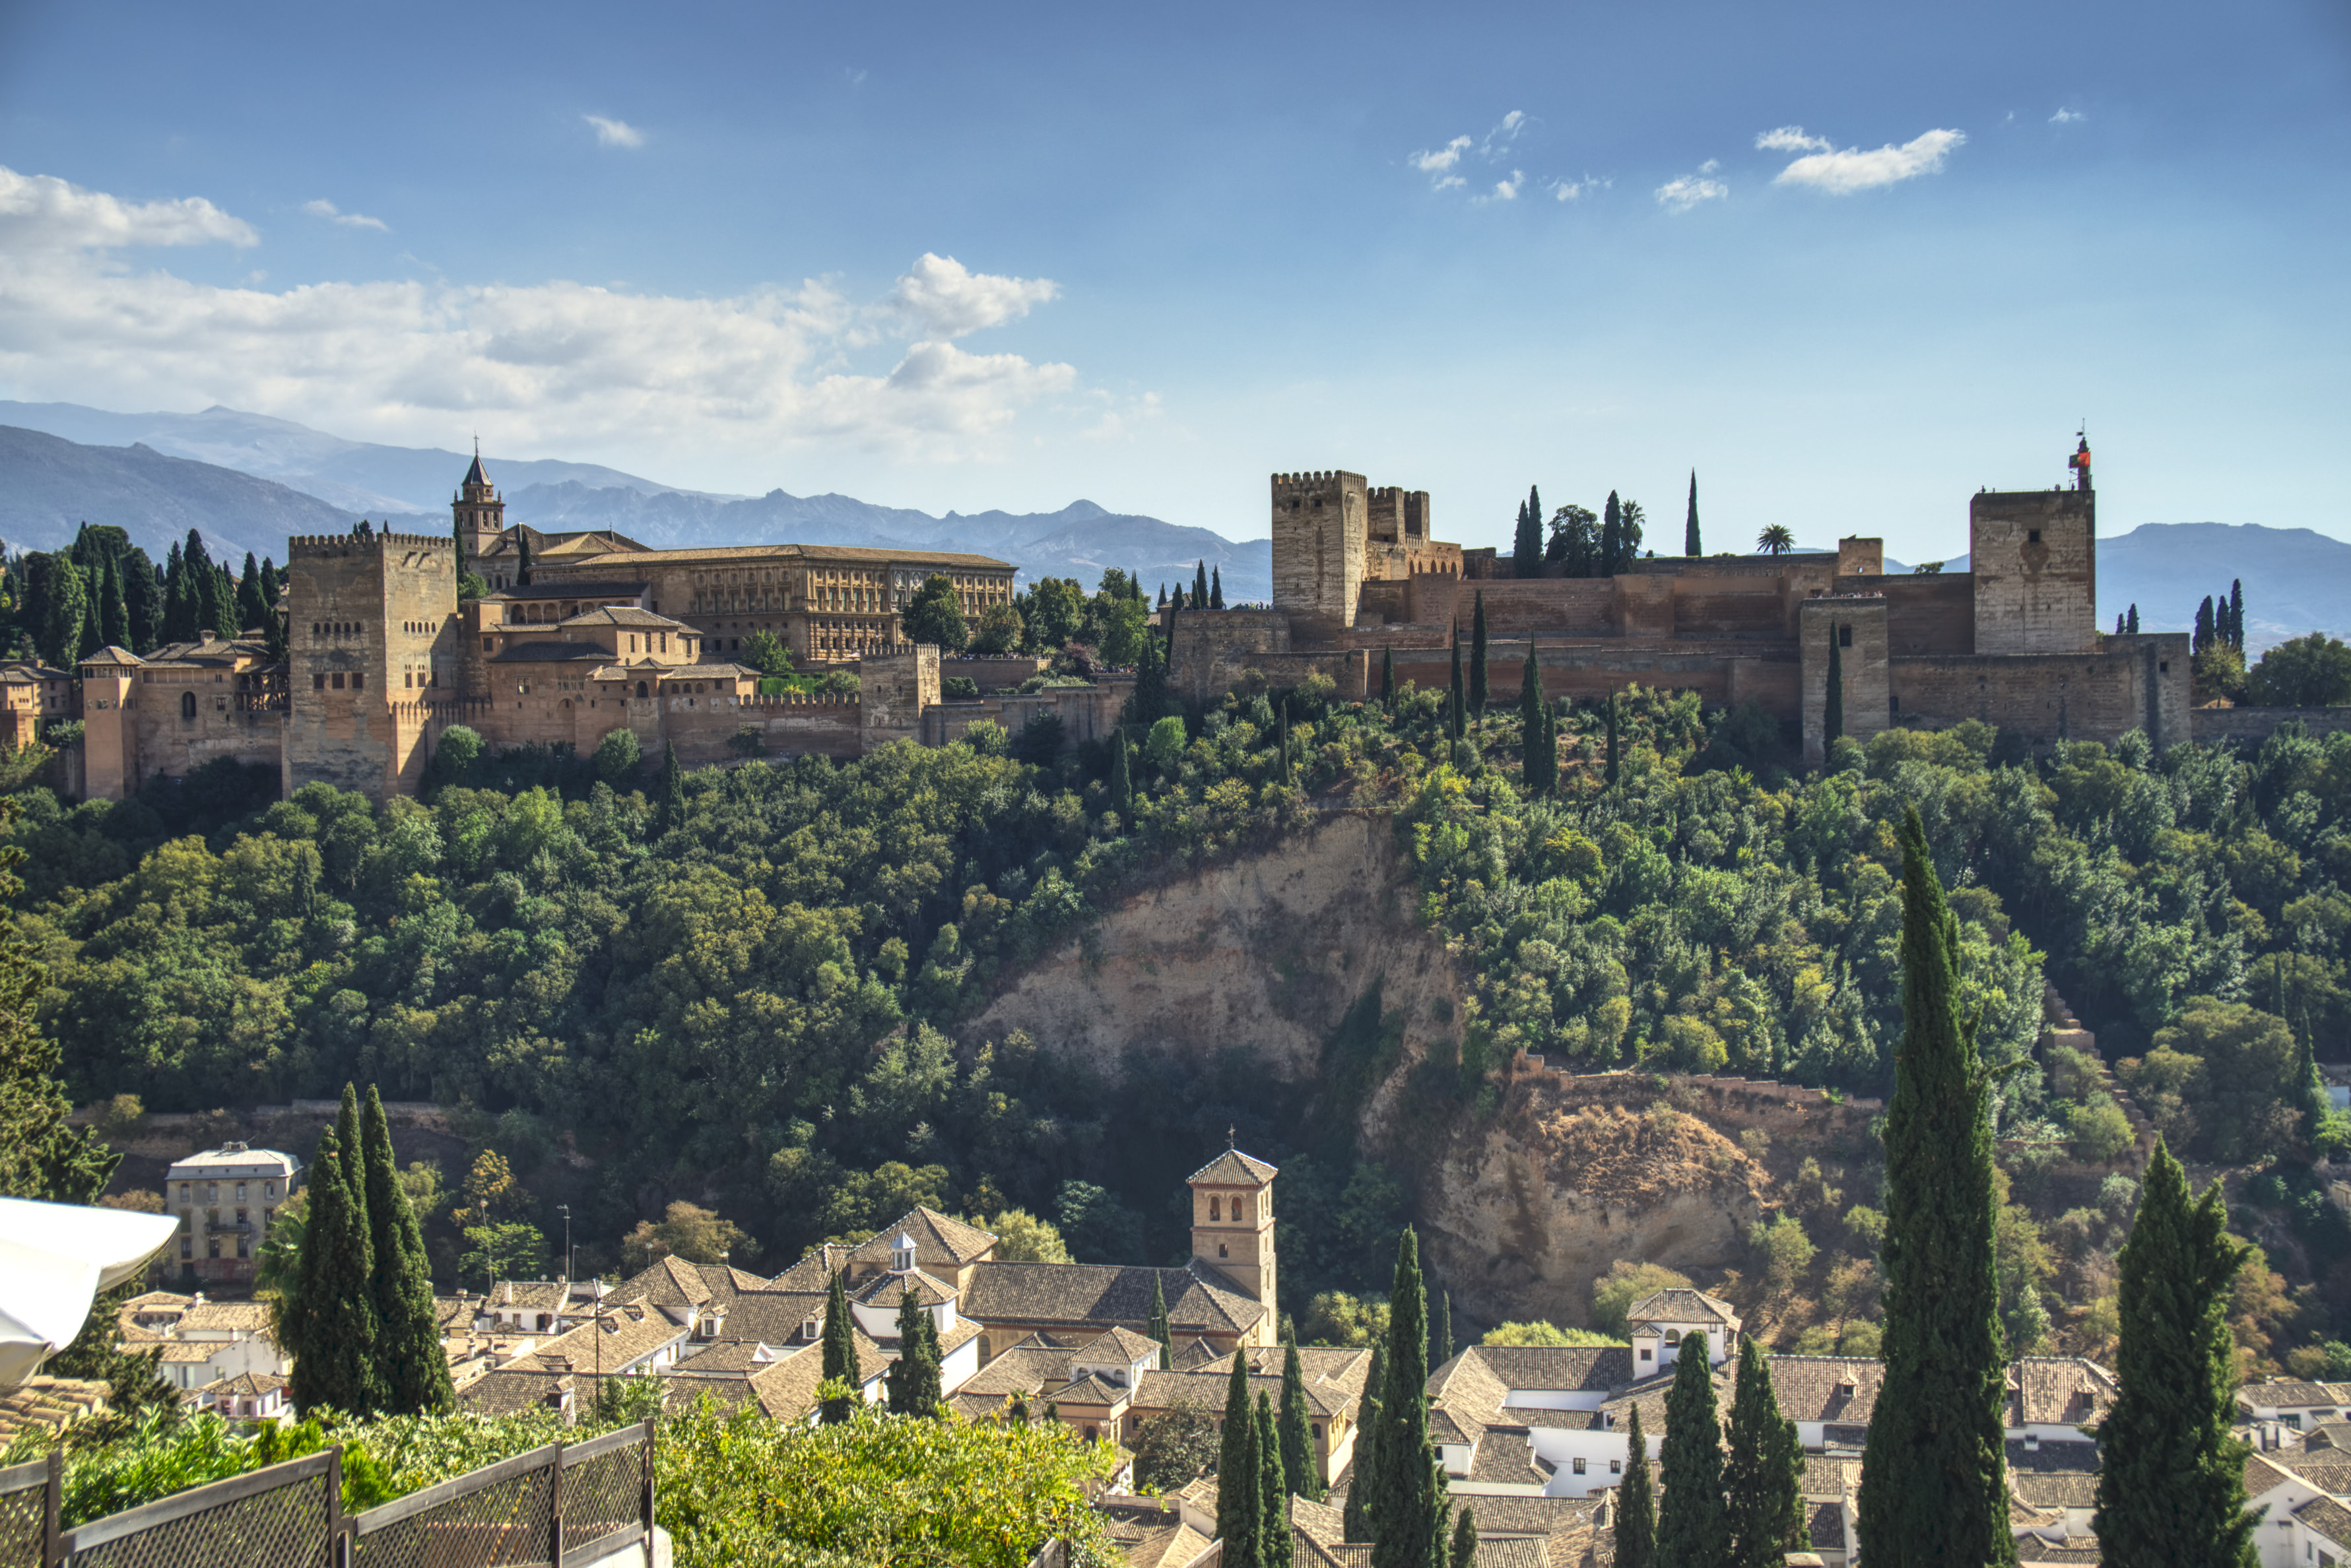 And the Alhambra itself, taken from Palaza de St. Nicolas